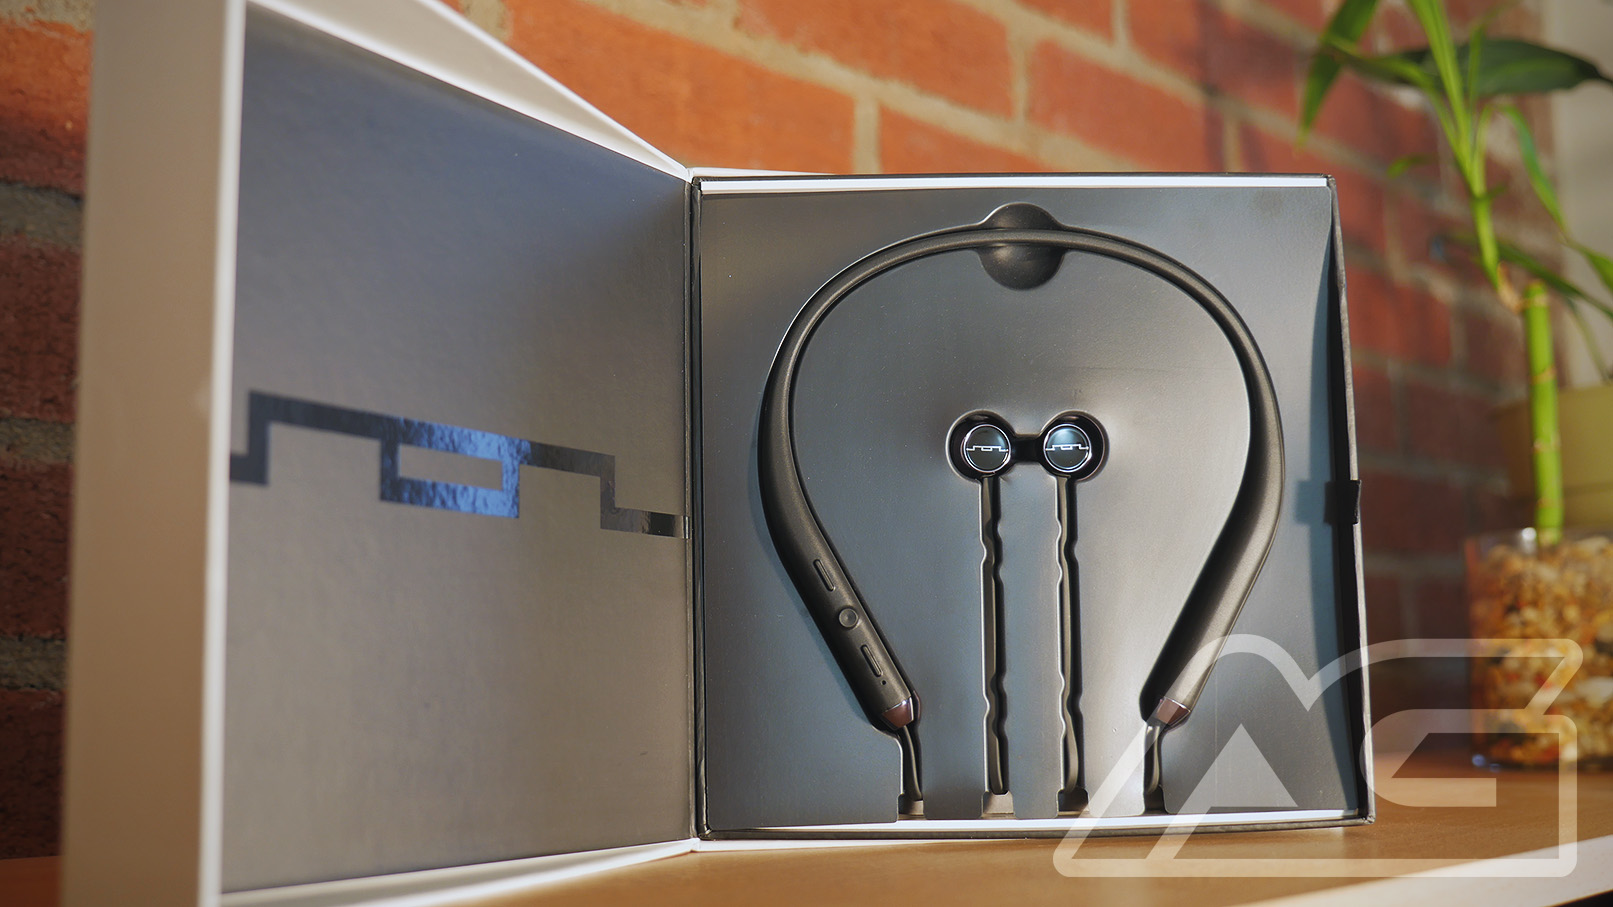 0dd3cf543c8 [dropcaps]W[/dropcaps]hile the Plantronics BackBeat GO 2 function as my  daily driver headset, I was pumped to get my hands on the Shadow Wireless  earphones ...